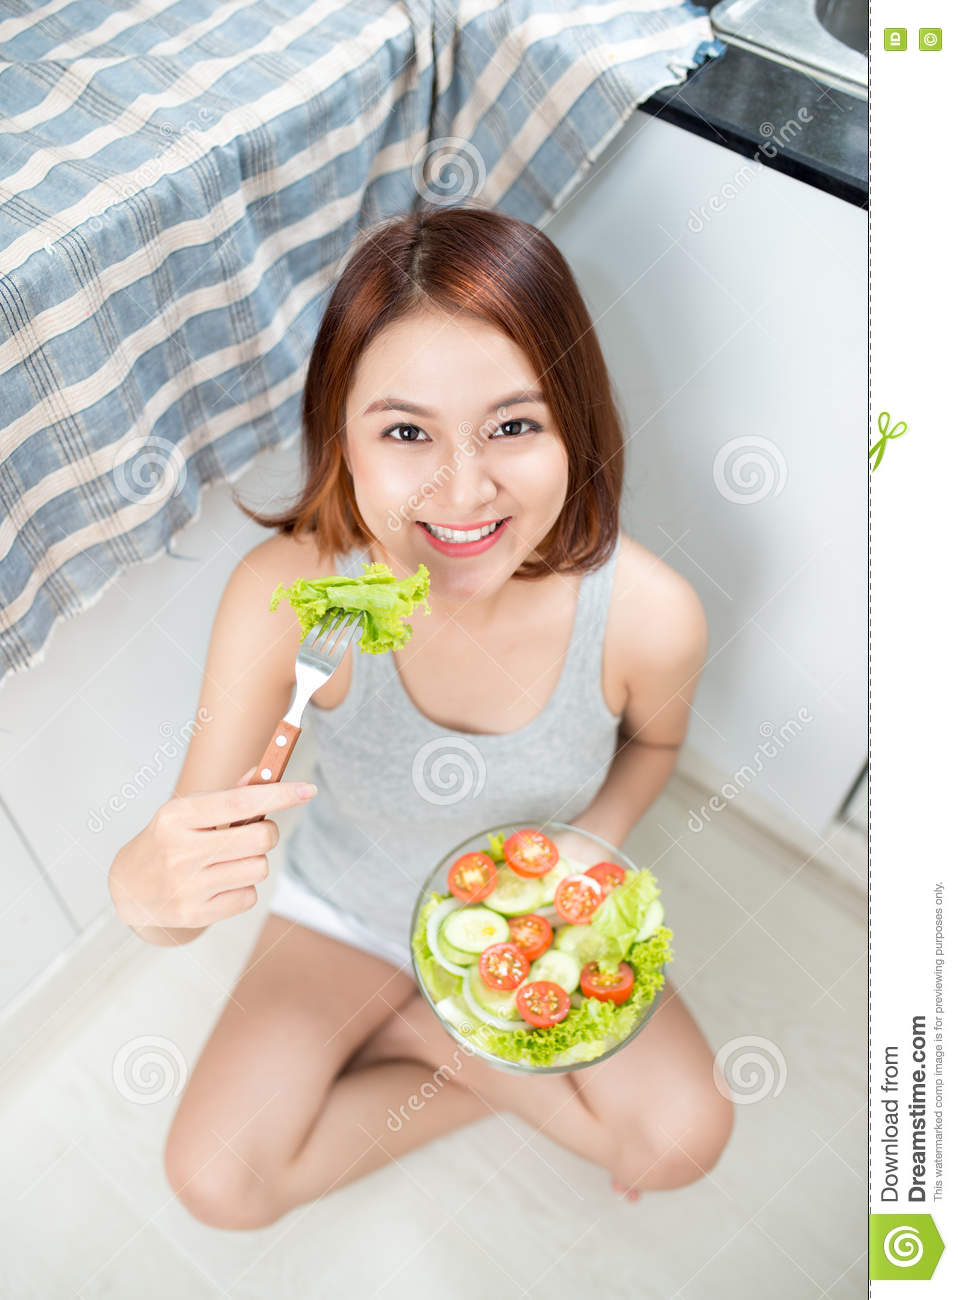 Here asian adult healthy diet